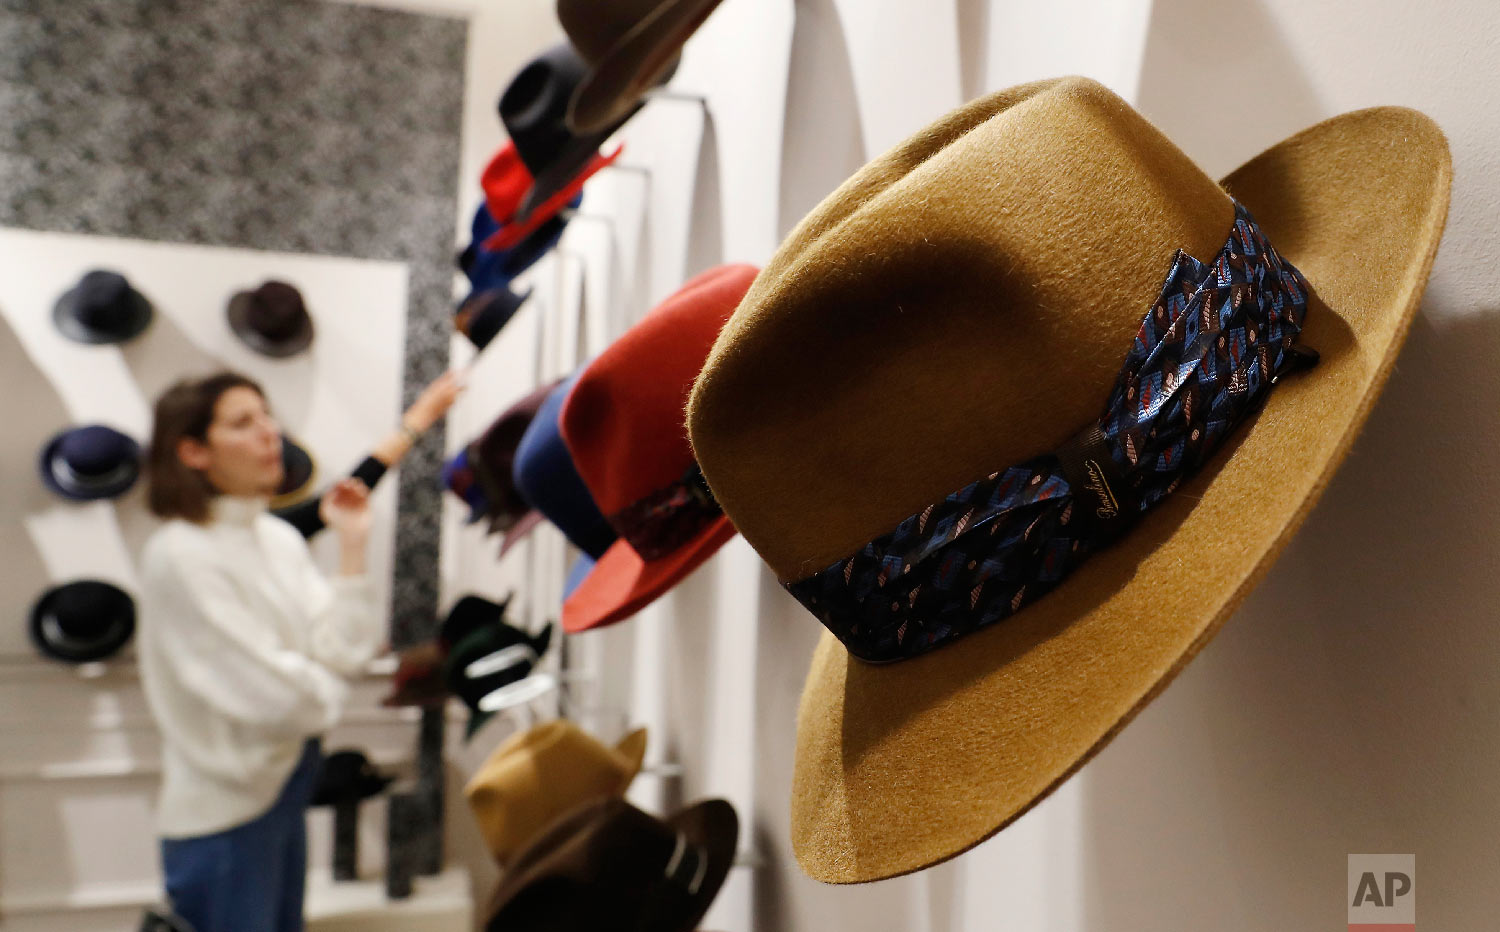 A woman looks at hats in a Borsalino store in downtown Milan, Italy, Wednesday, Jan. 16, 2019. (AP Photo/Antonio Calanni)